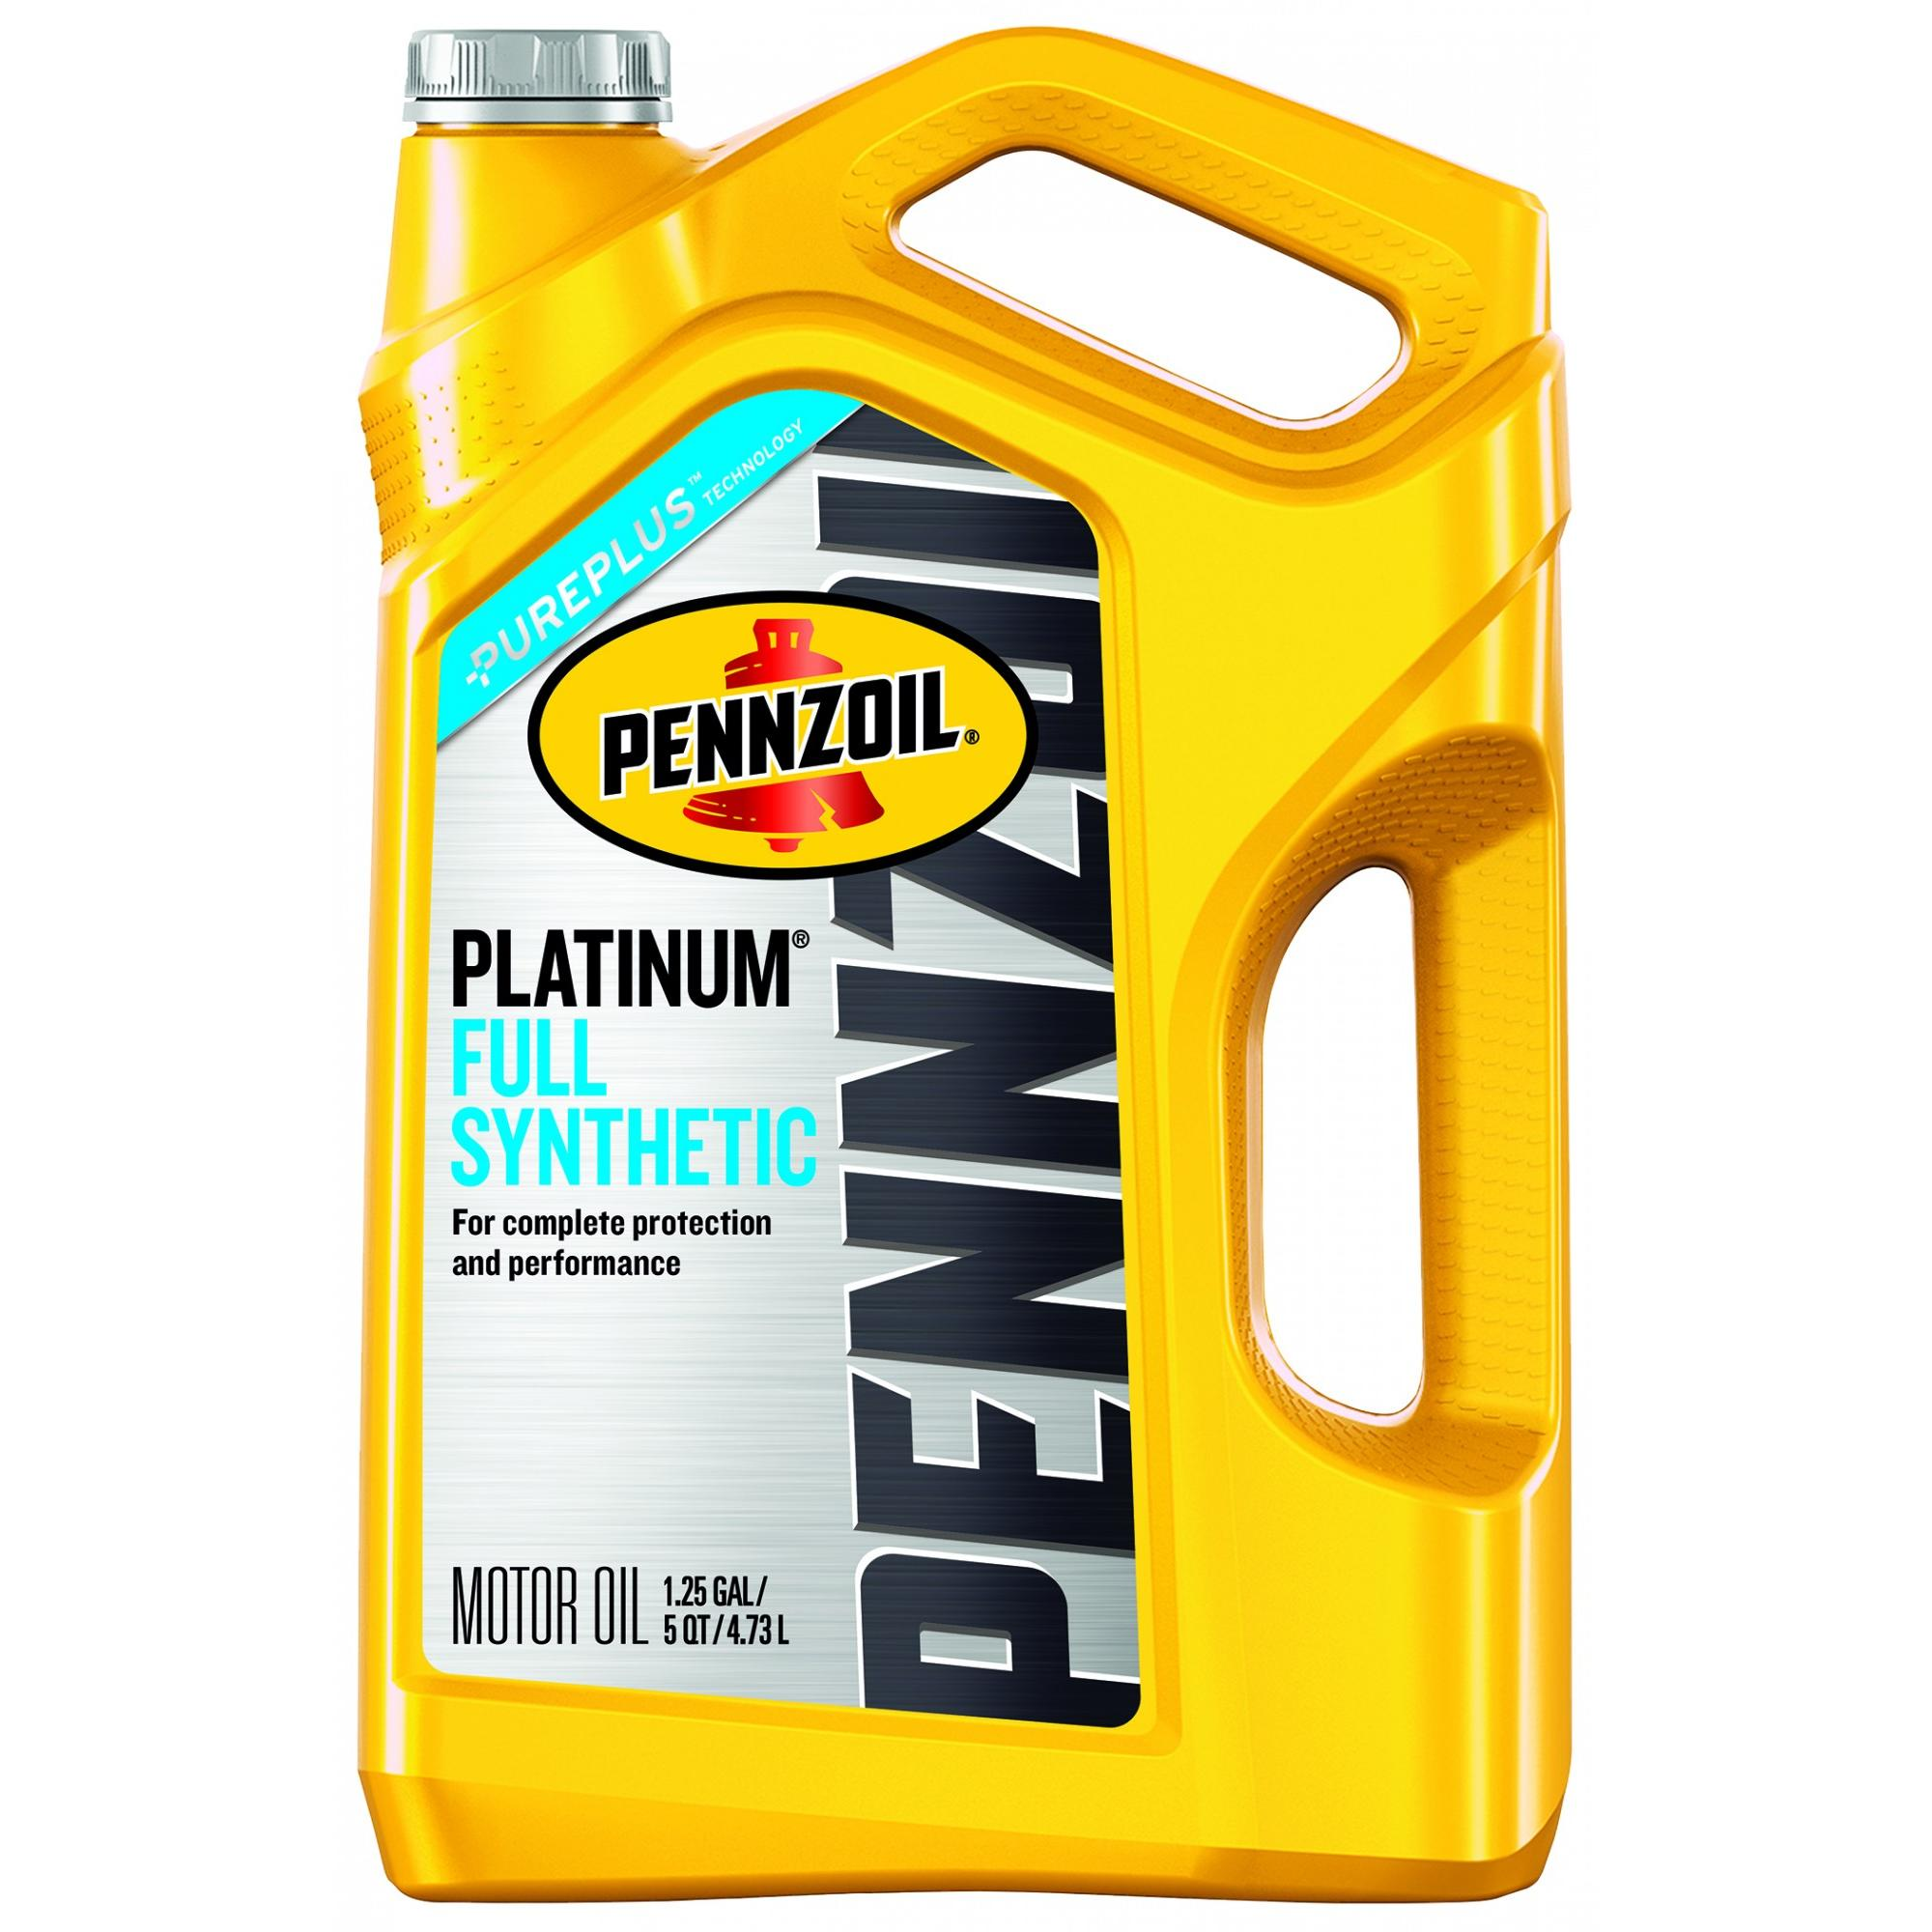 Pennzoil 0W20 Platinum Full Synthetic Motor Oil, 5 Qts